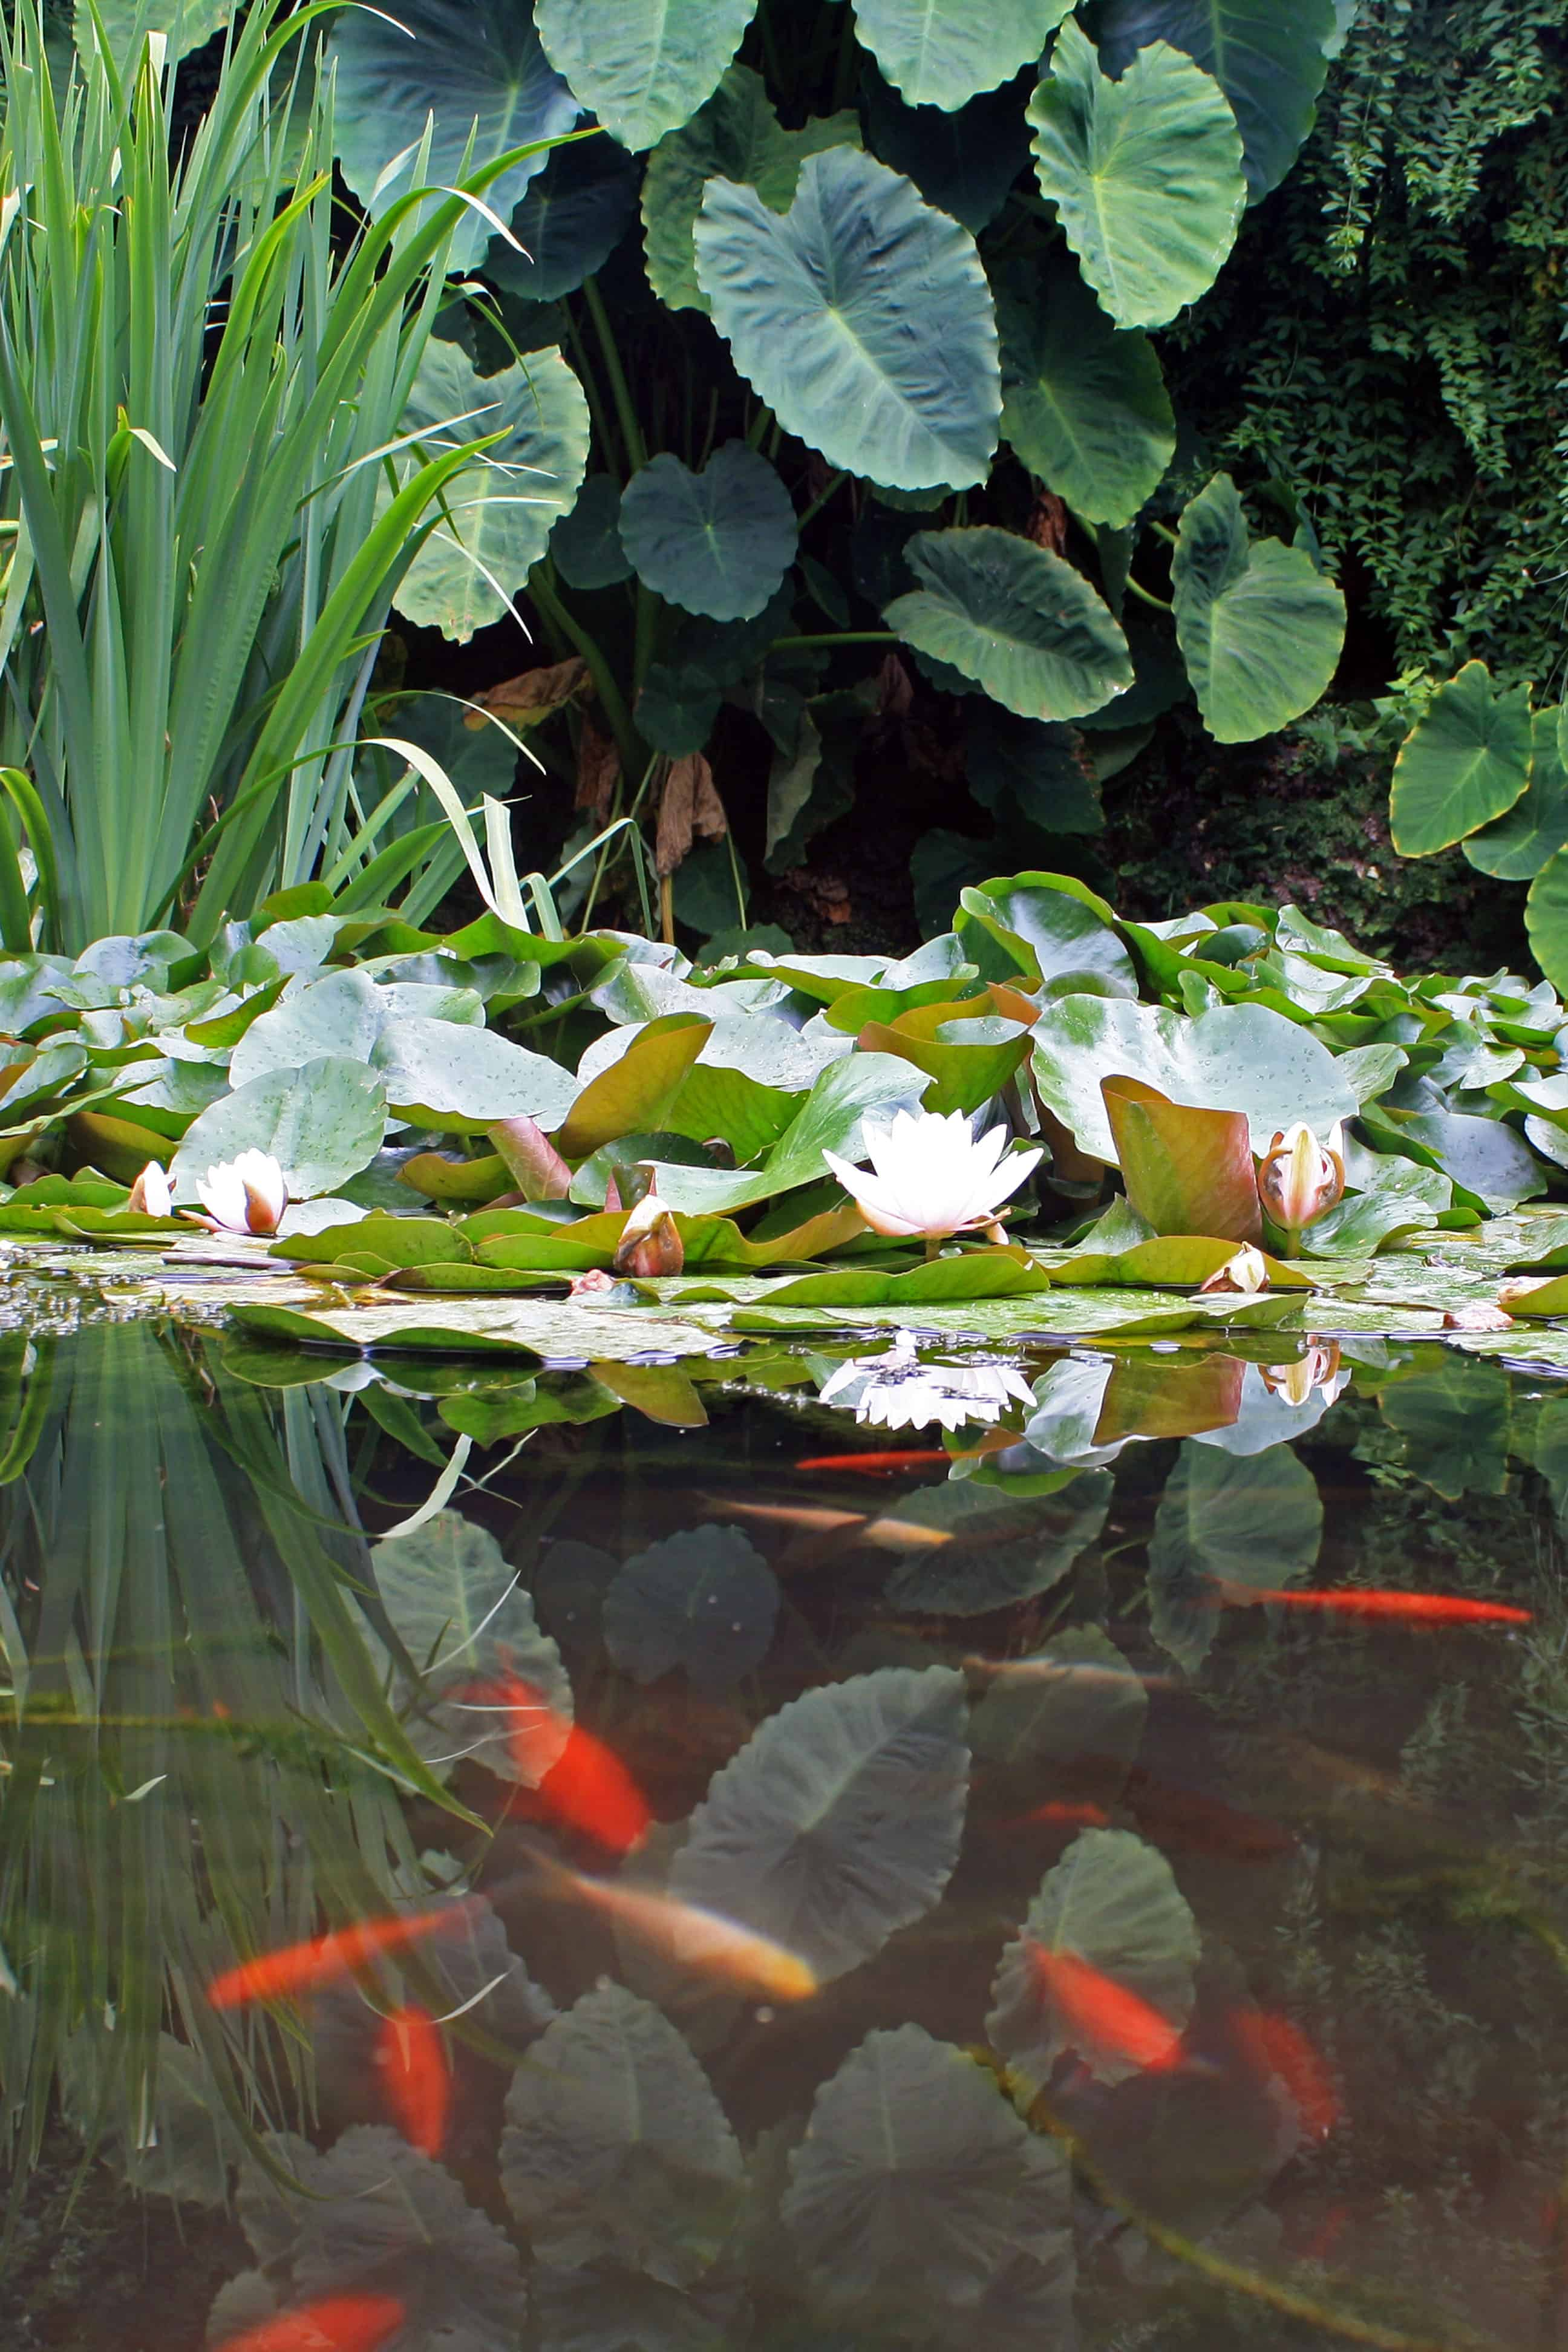 Pond in Botanical Garden of the University of Coimbra, Portugal